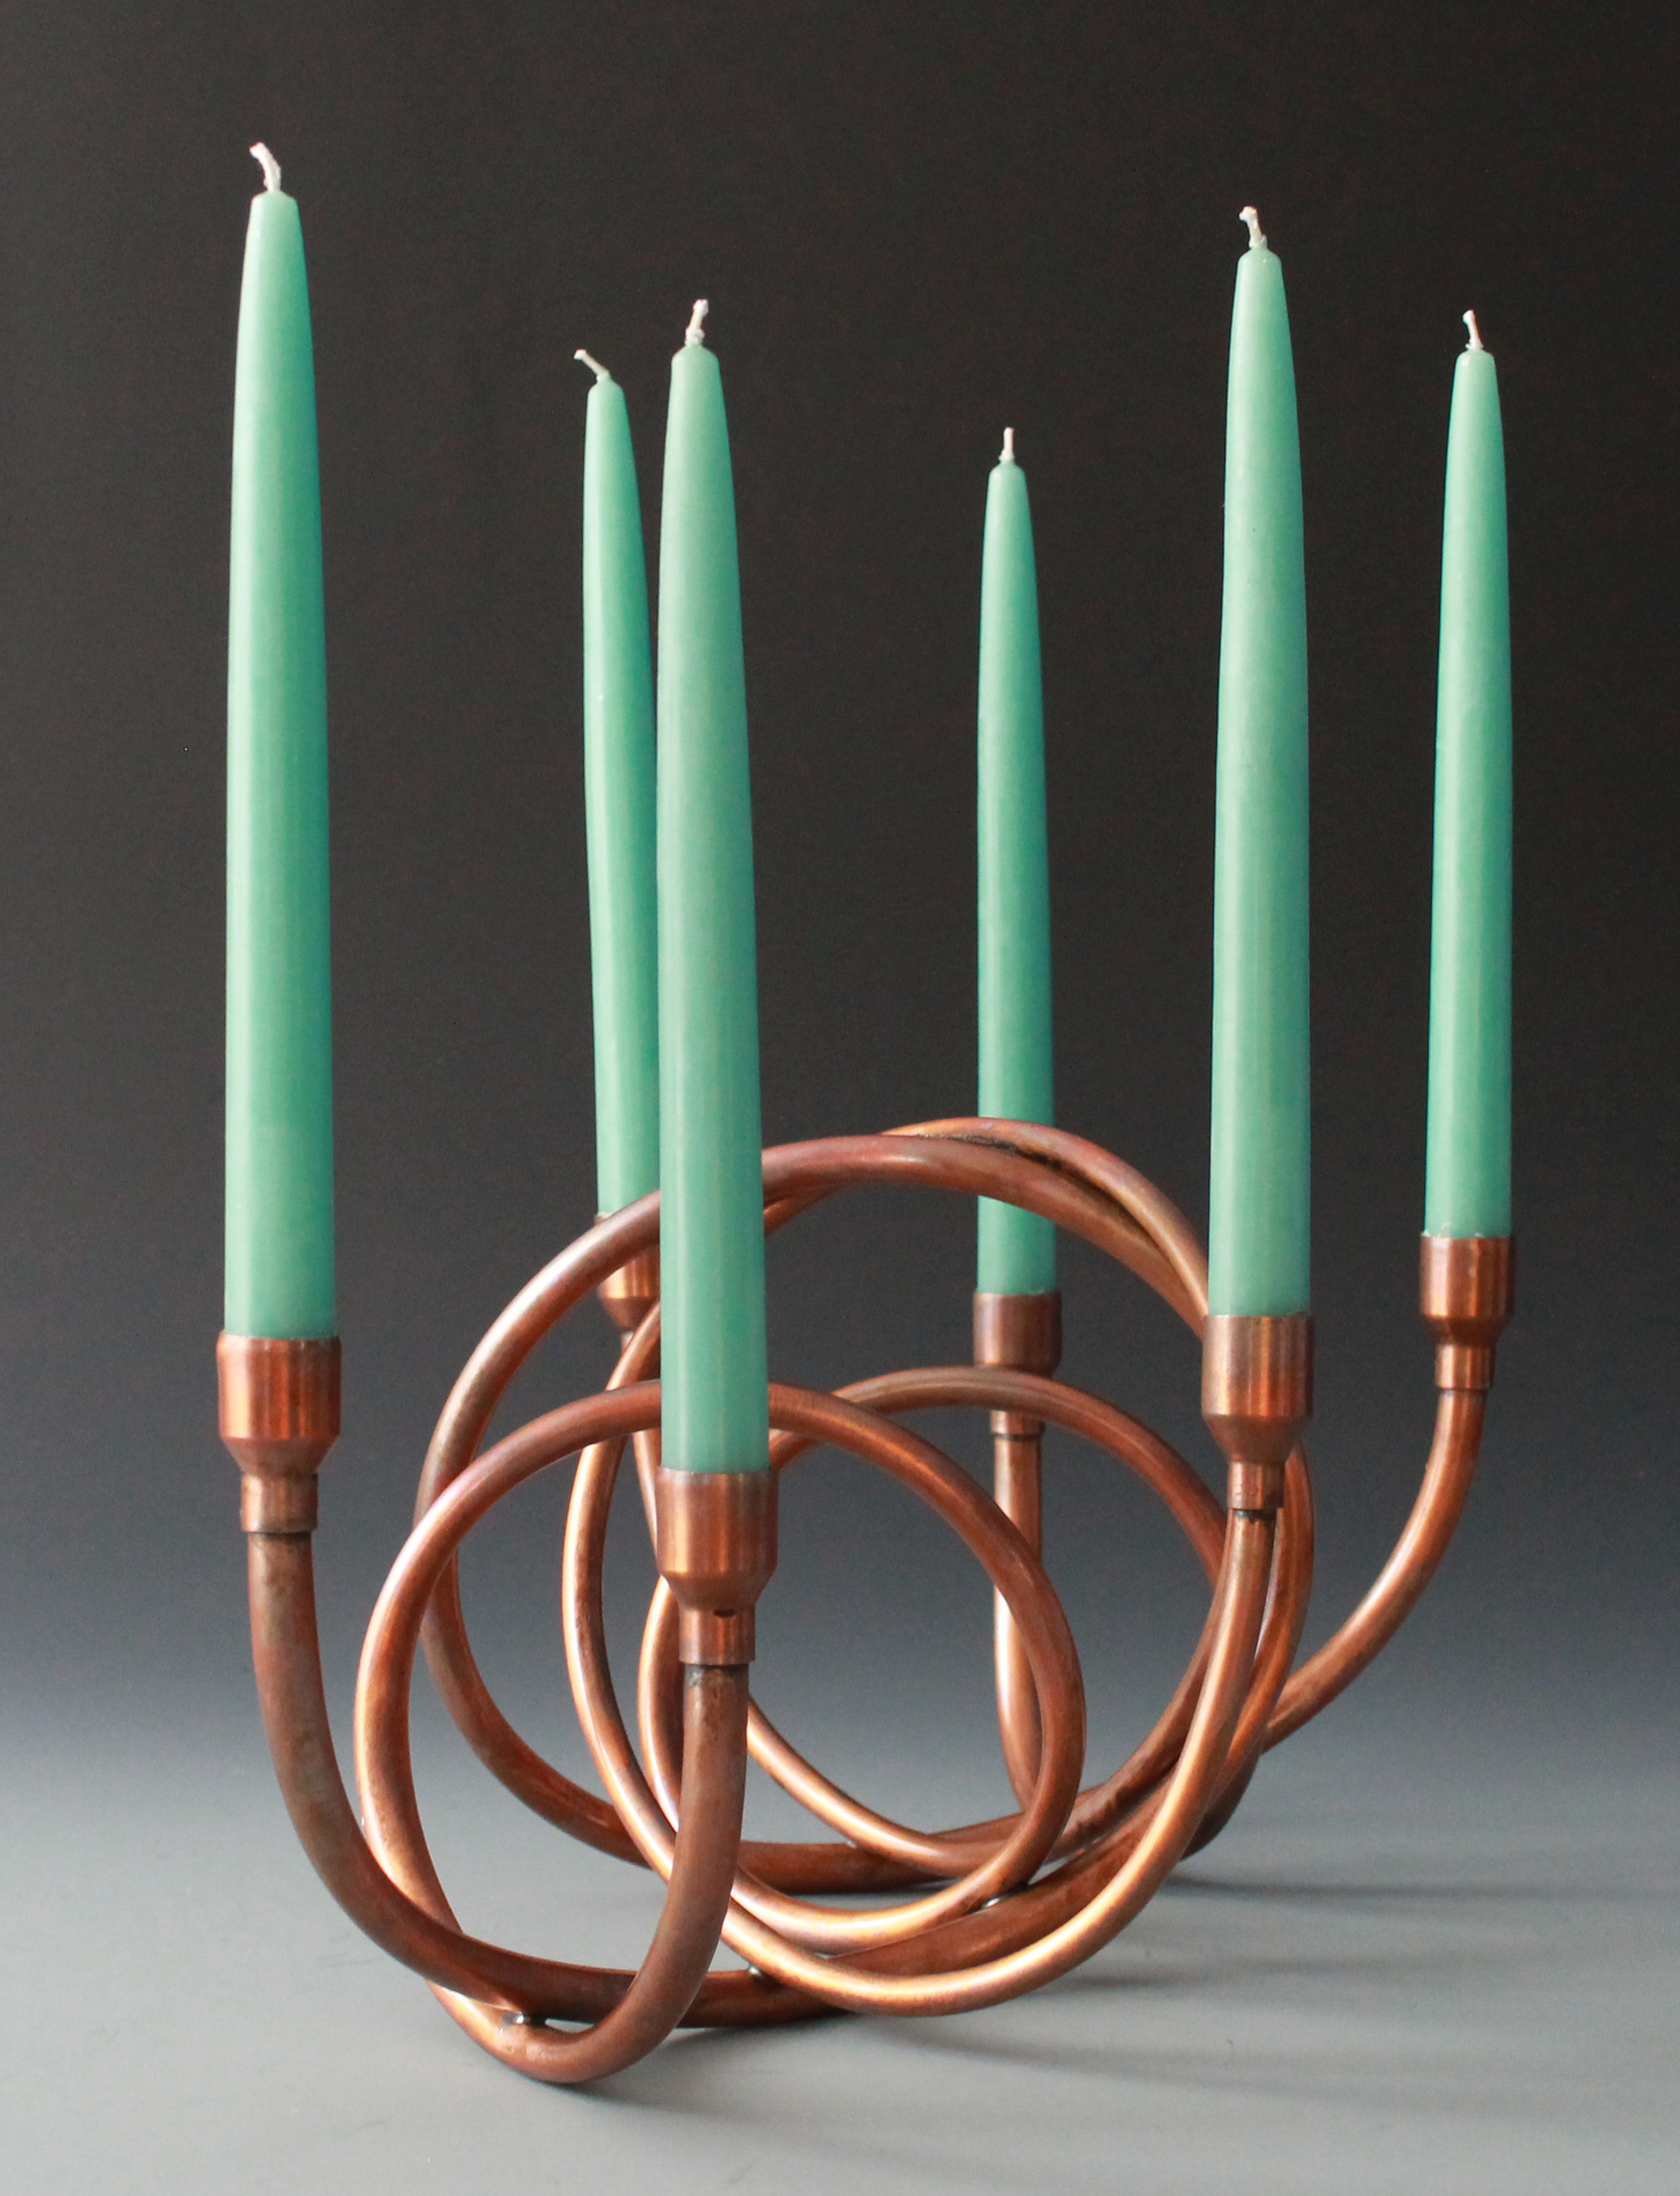 Six-light candelabra